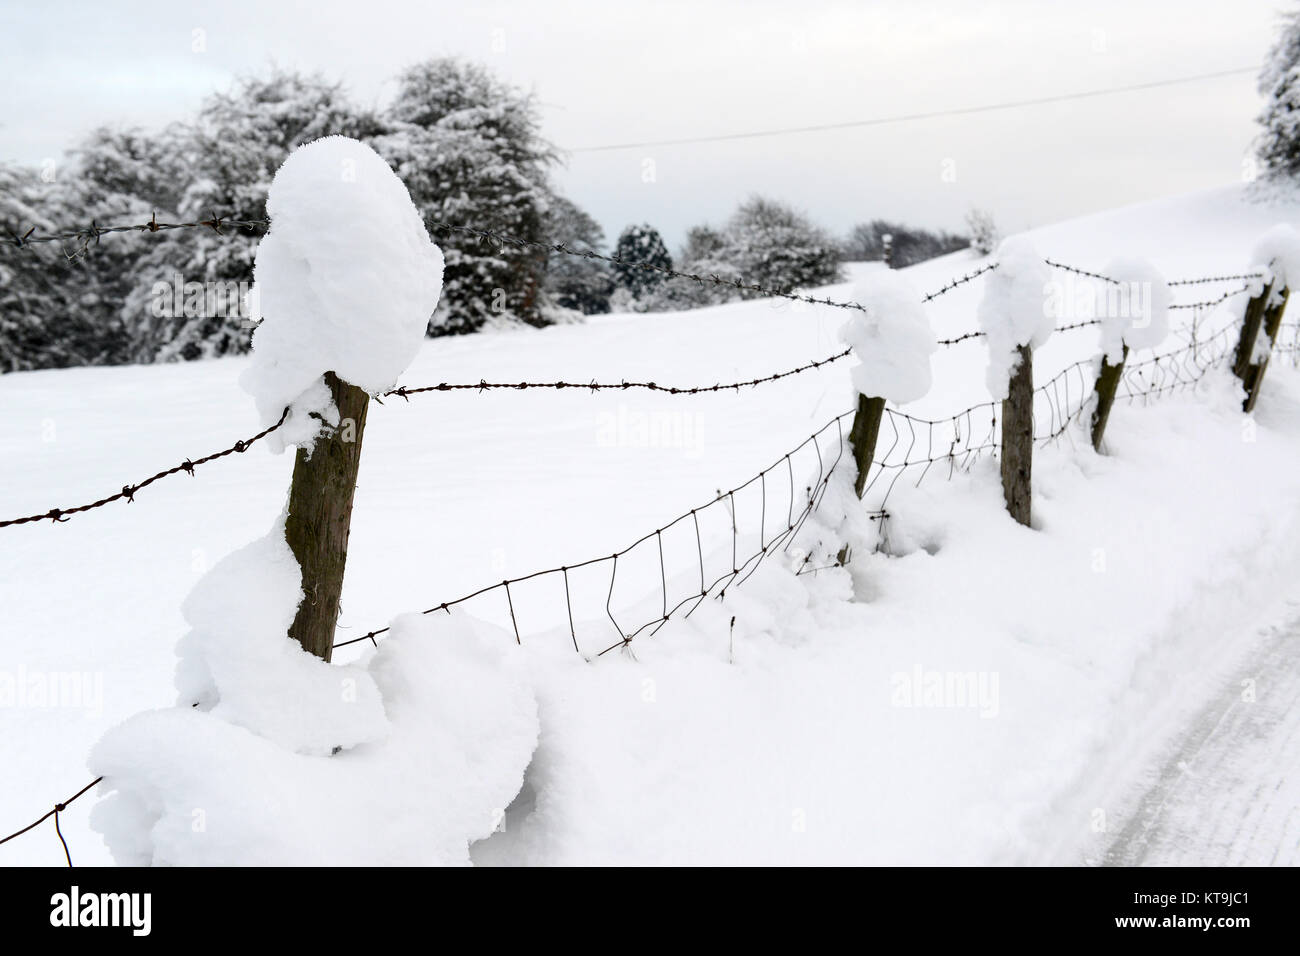 On Barbed Wire Fence Stock Photos & On Barbed Wire Fence Stock ...